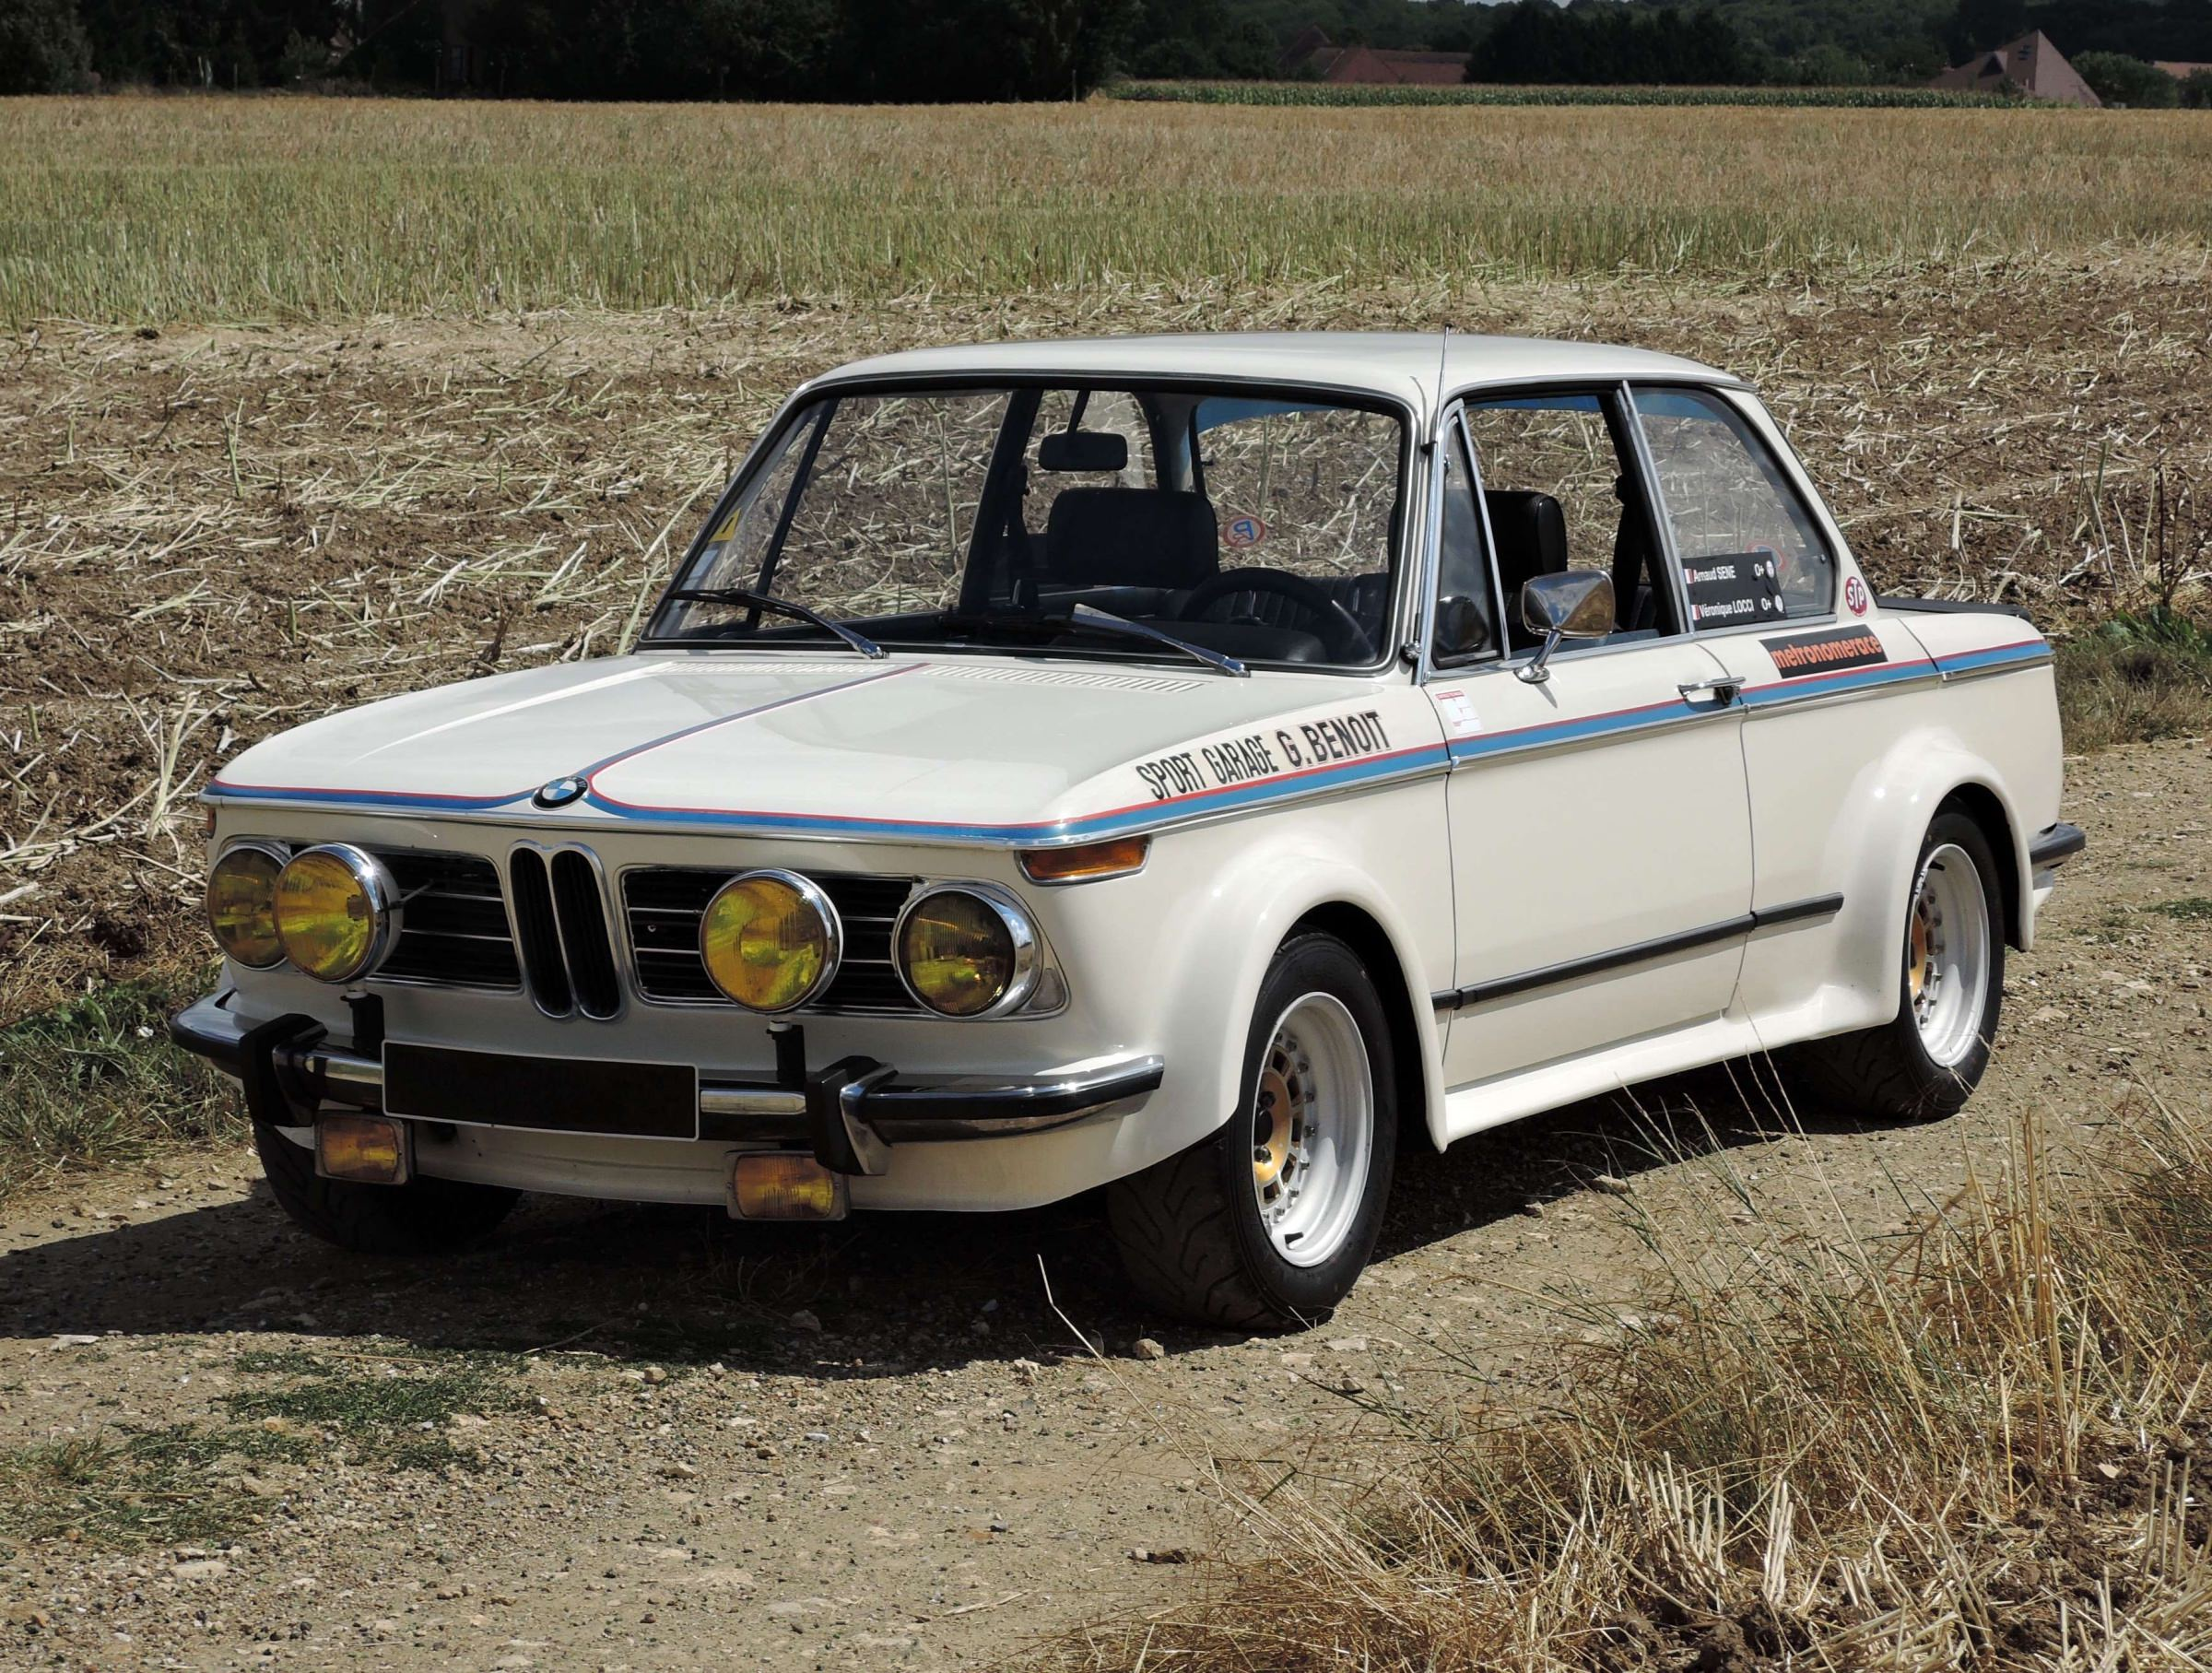 1971 bmw 2002 tii specification group 2 a french built racer. Black Bedroom Furniture Sets. Home Design Ideas